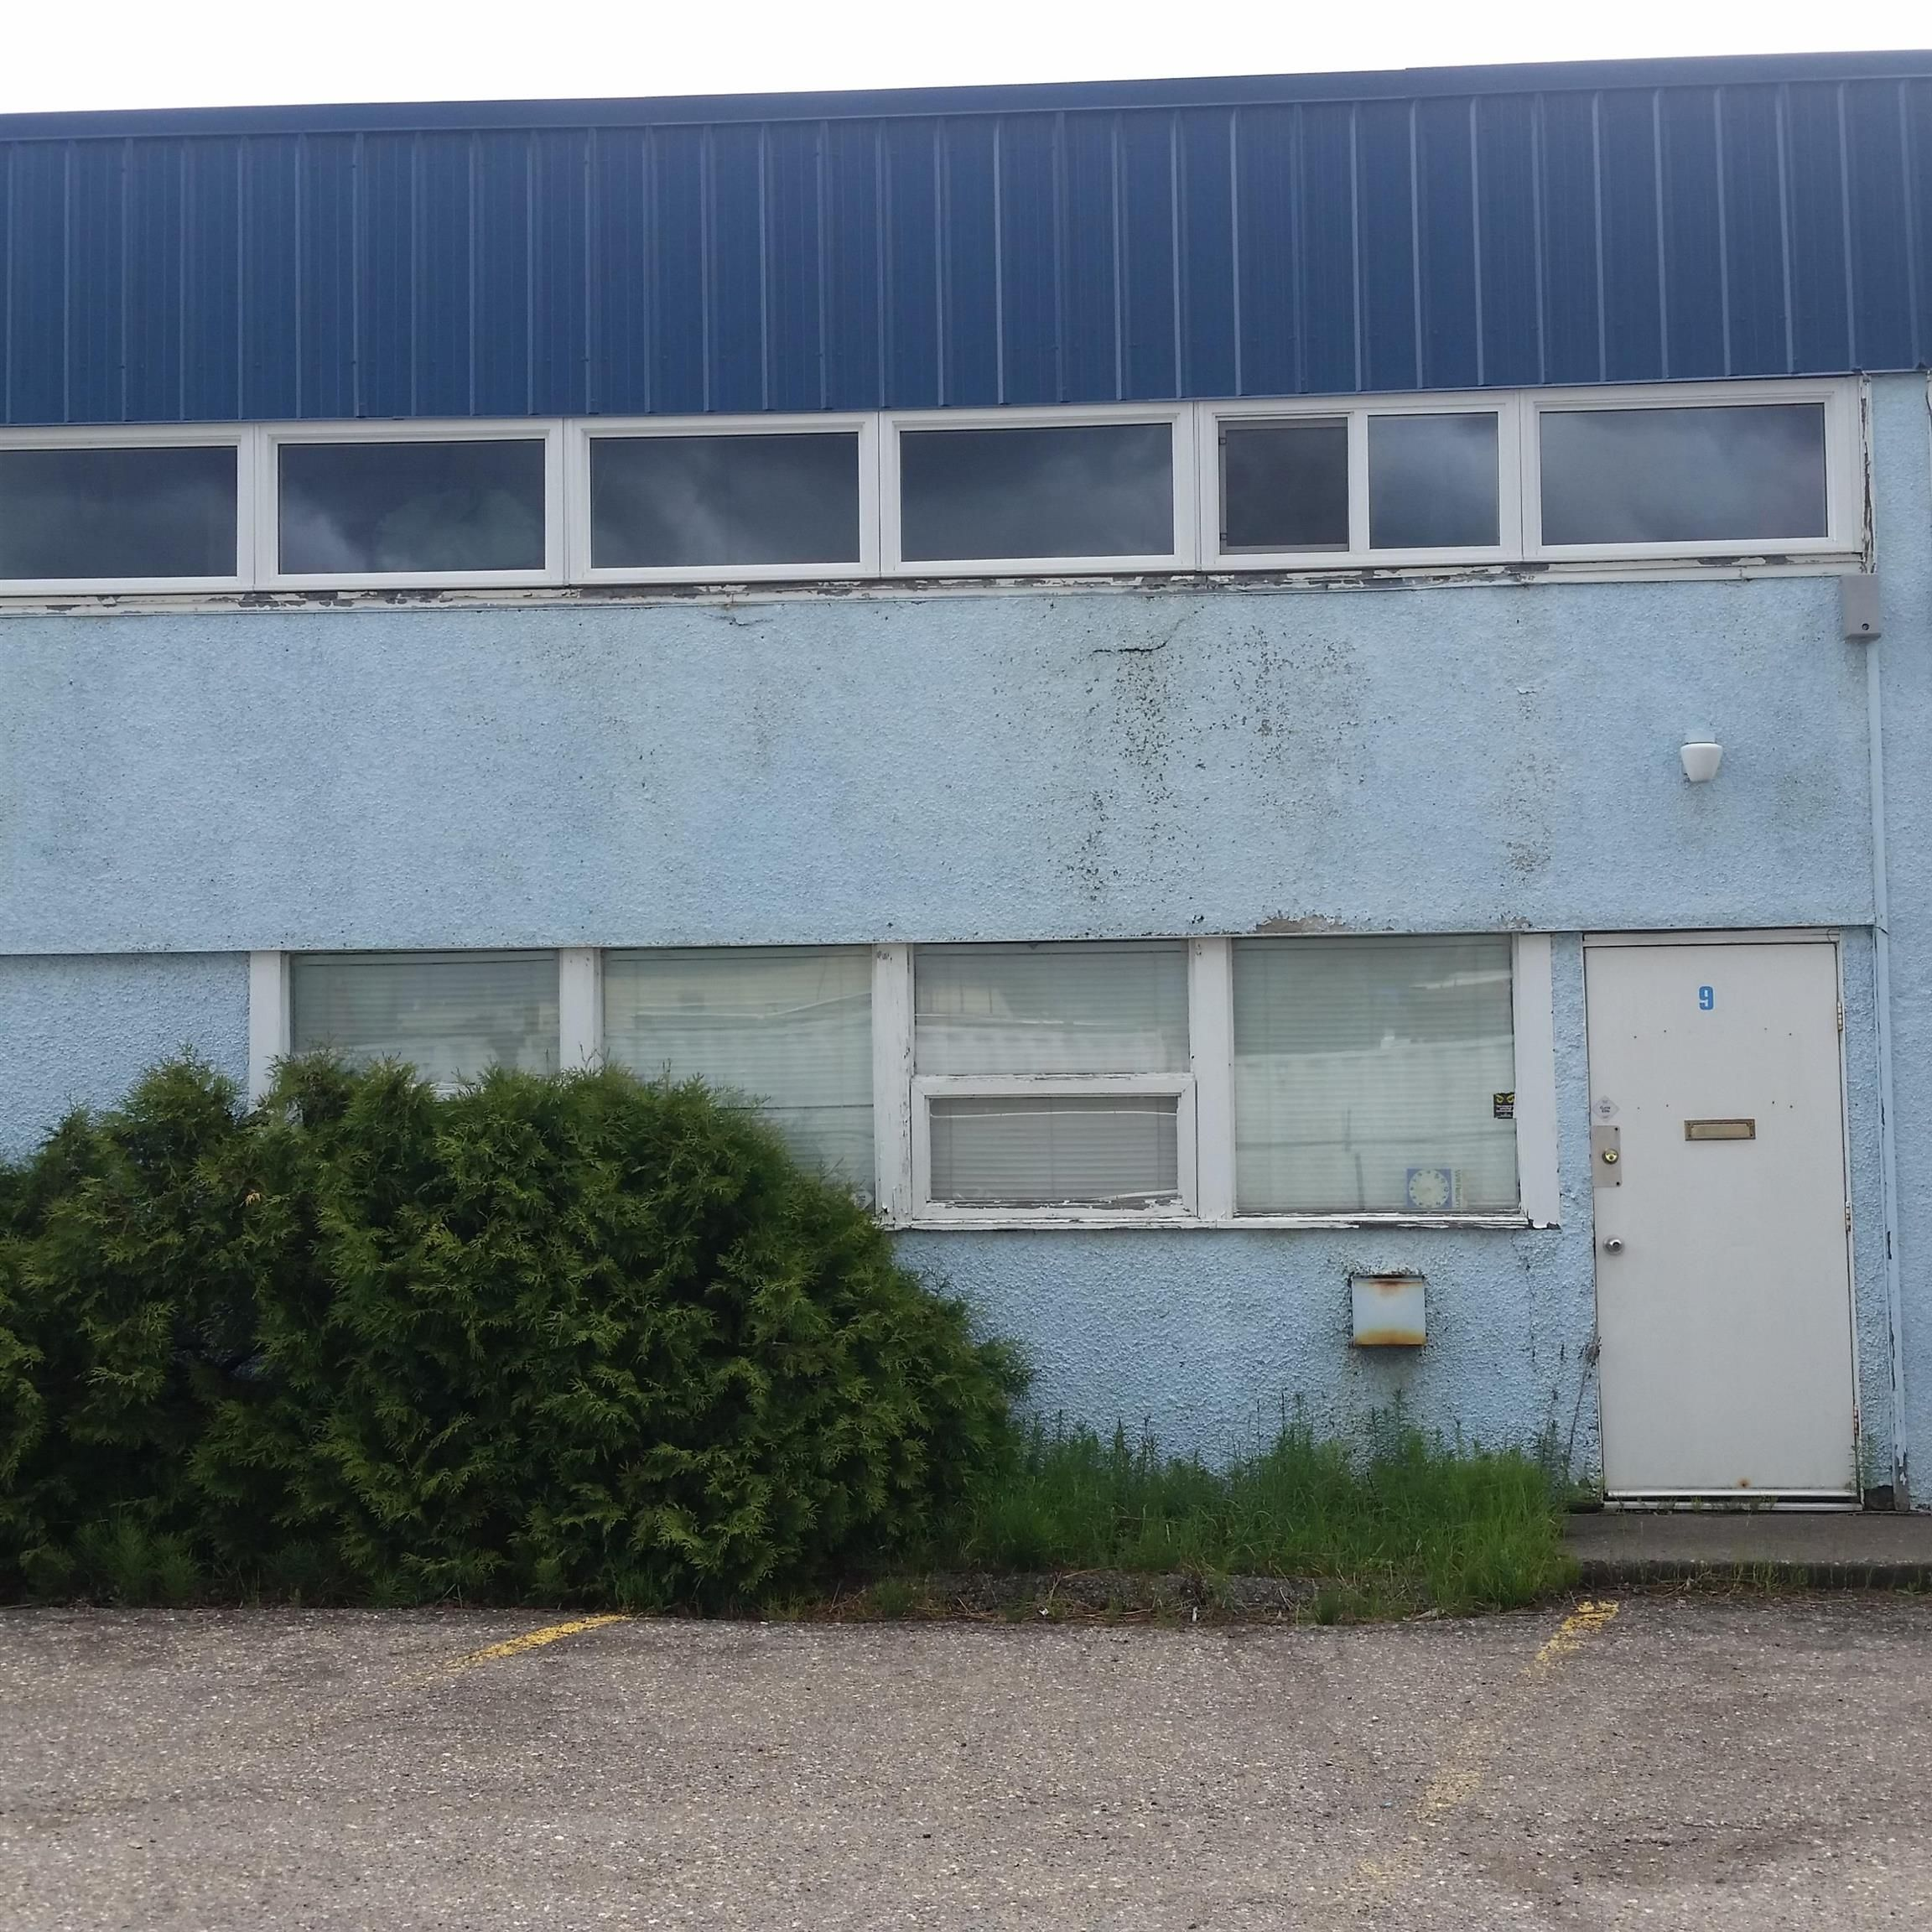 Main Photo: 9 1989 1ST Avenue in Prince George: Downtown PG Industrial for sale (PG City Central (Zone 72))  : MLS®# C8039755